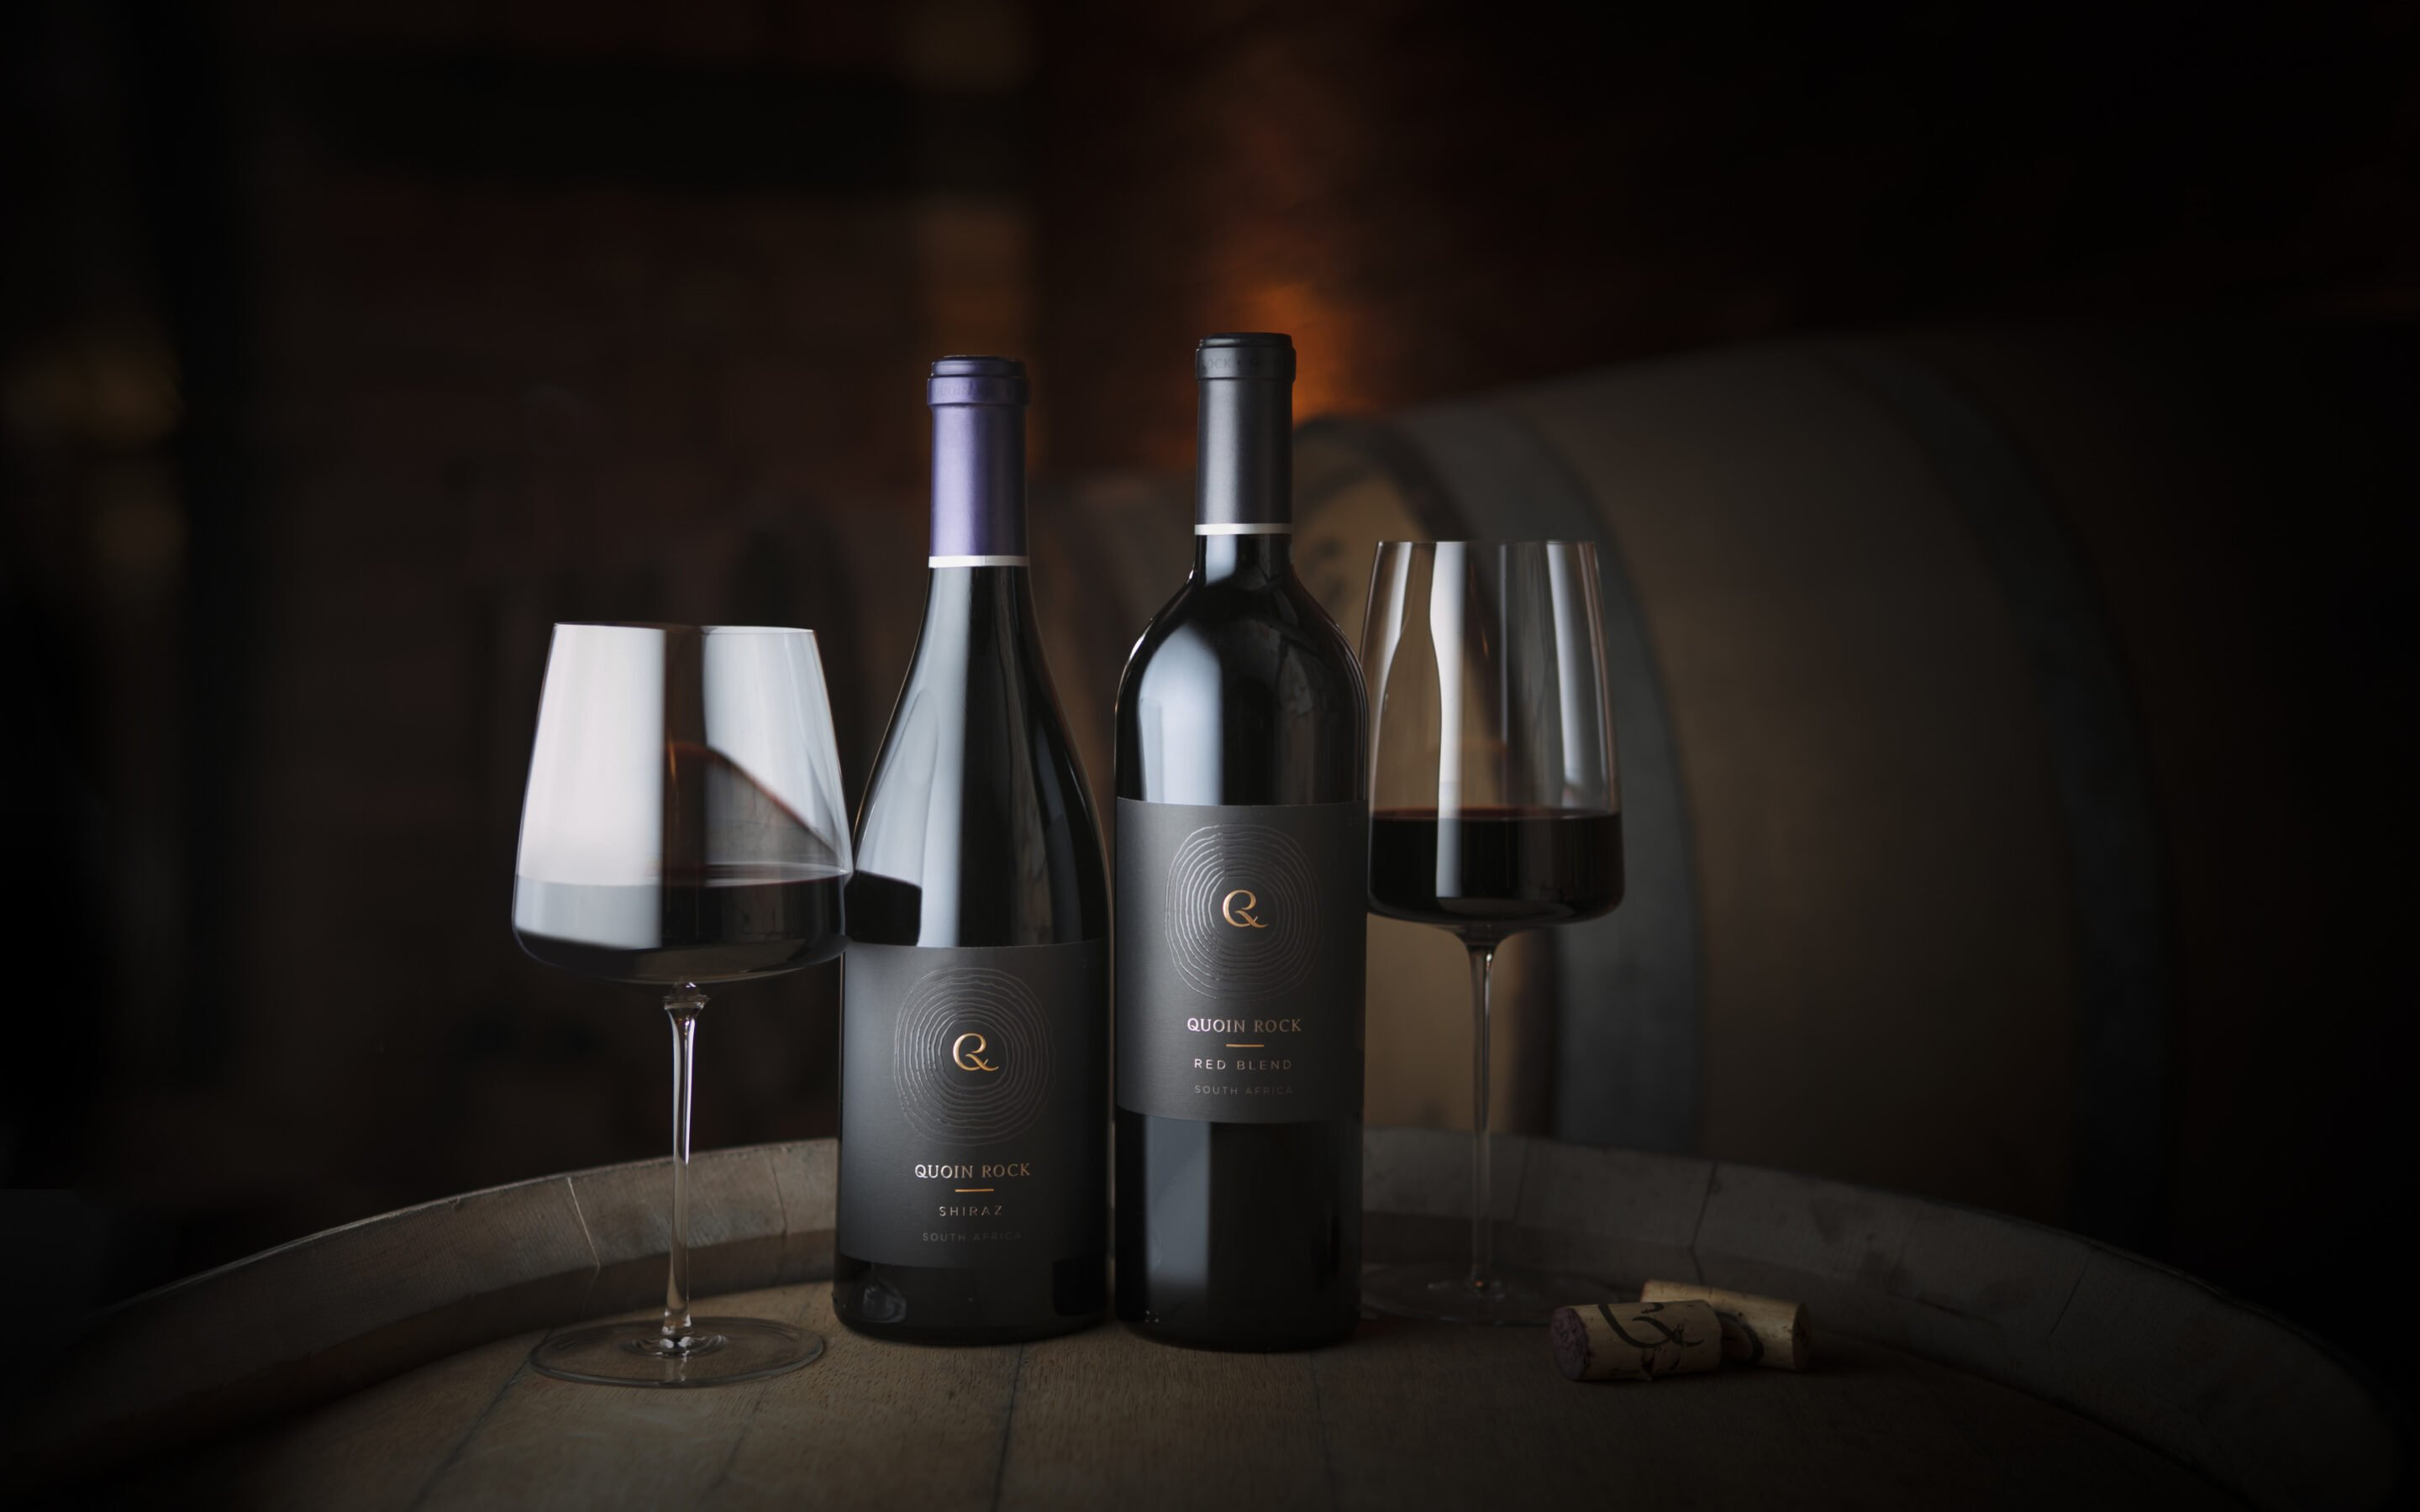 Quoin Rock Red Wines